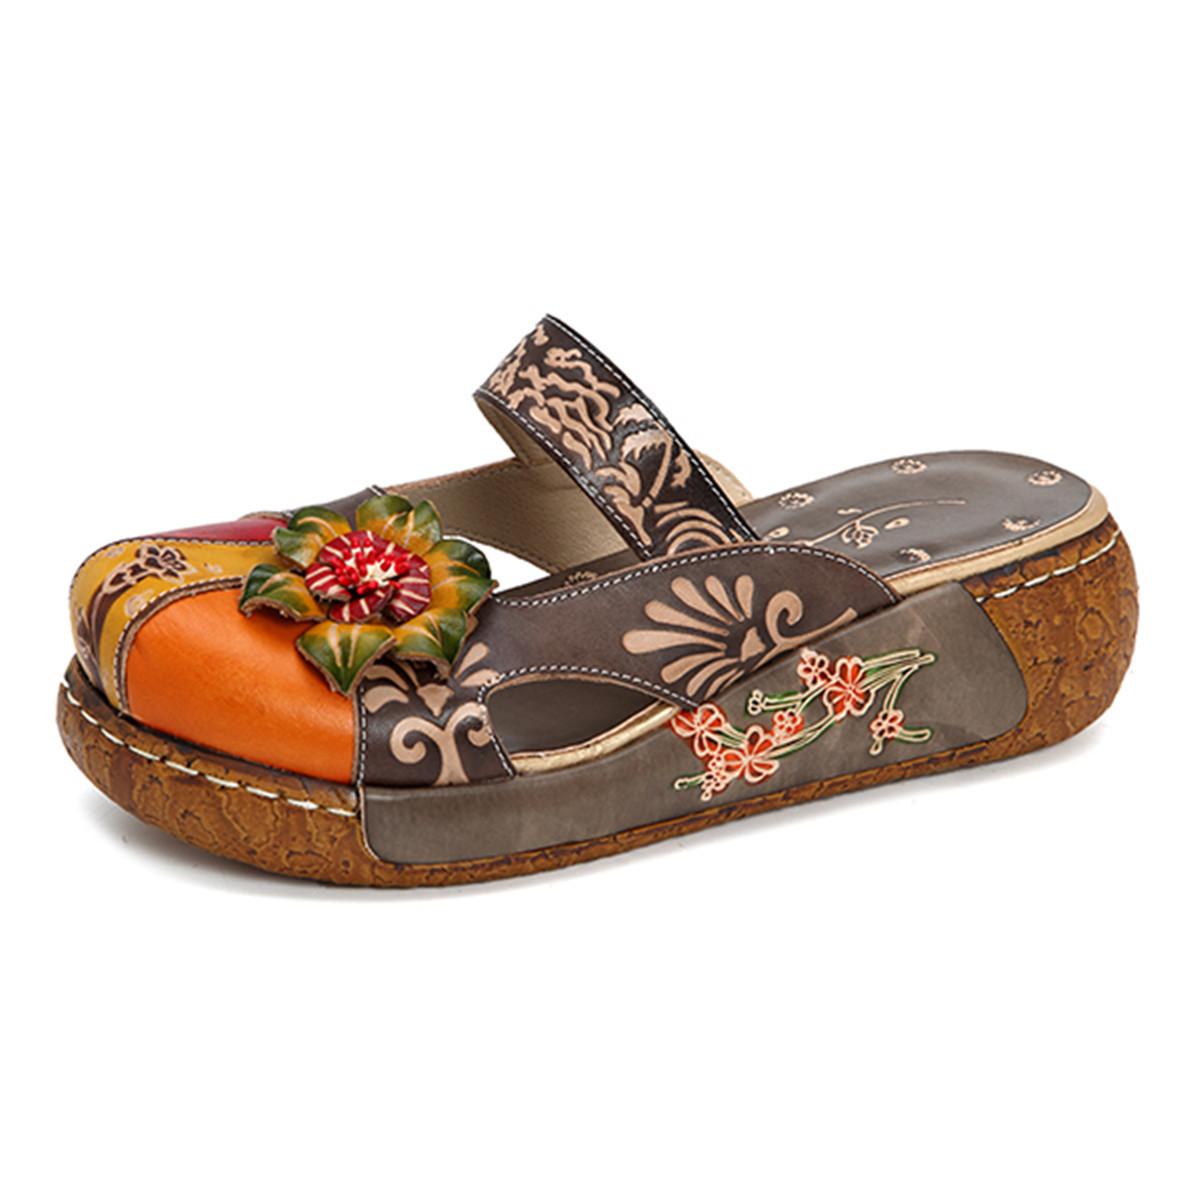 Johnature Retro Appliques Sandals 2019 New Genuine Leather Women Summer Ladies Shoes Woman Flower Bohemia Sandals